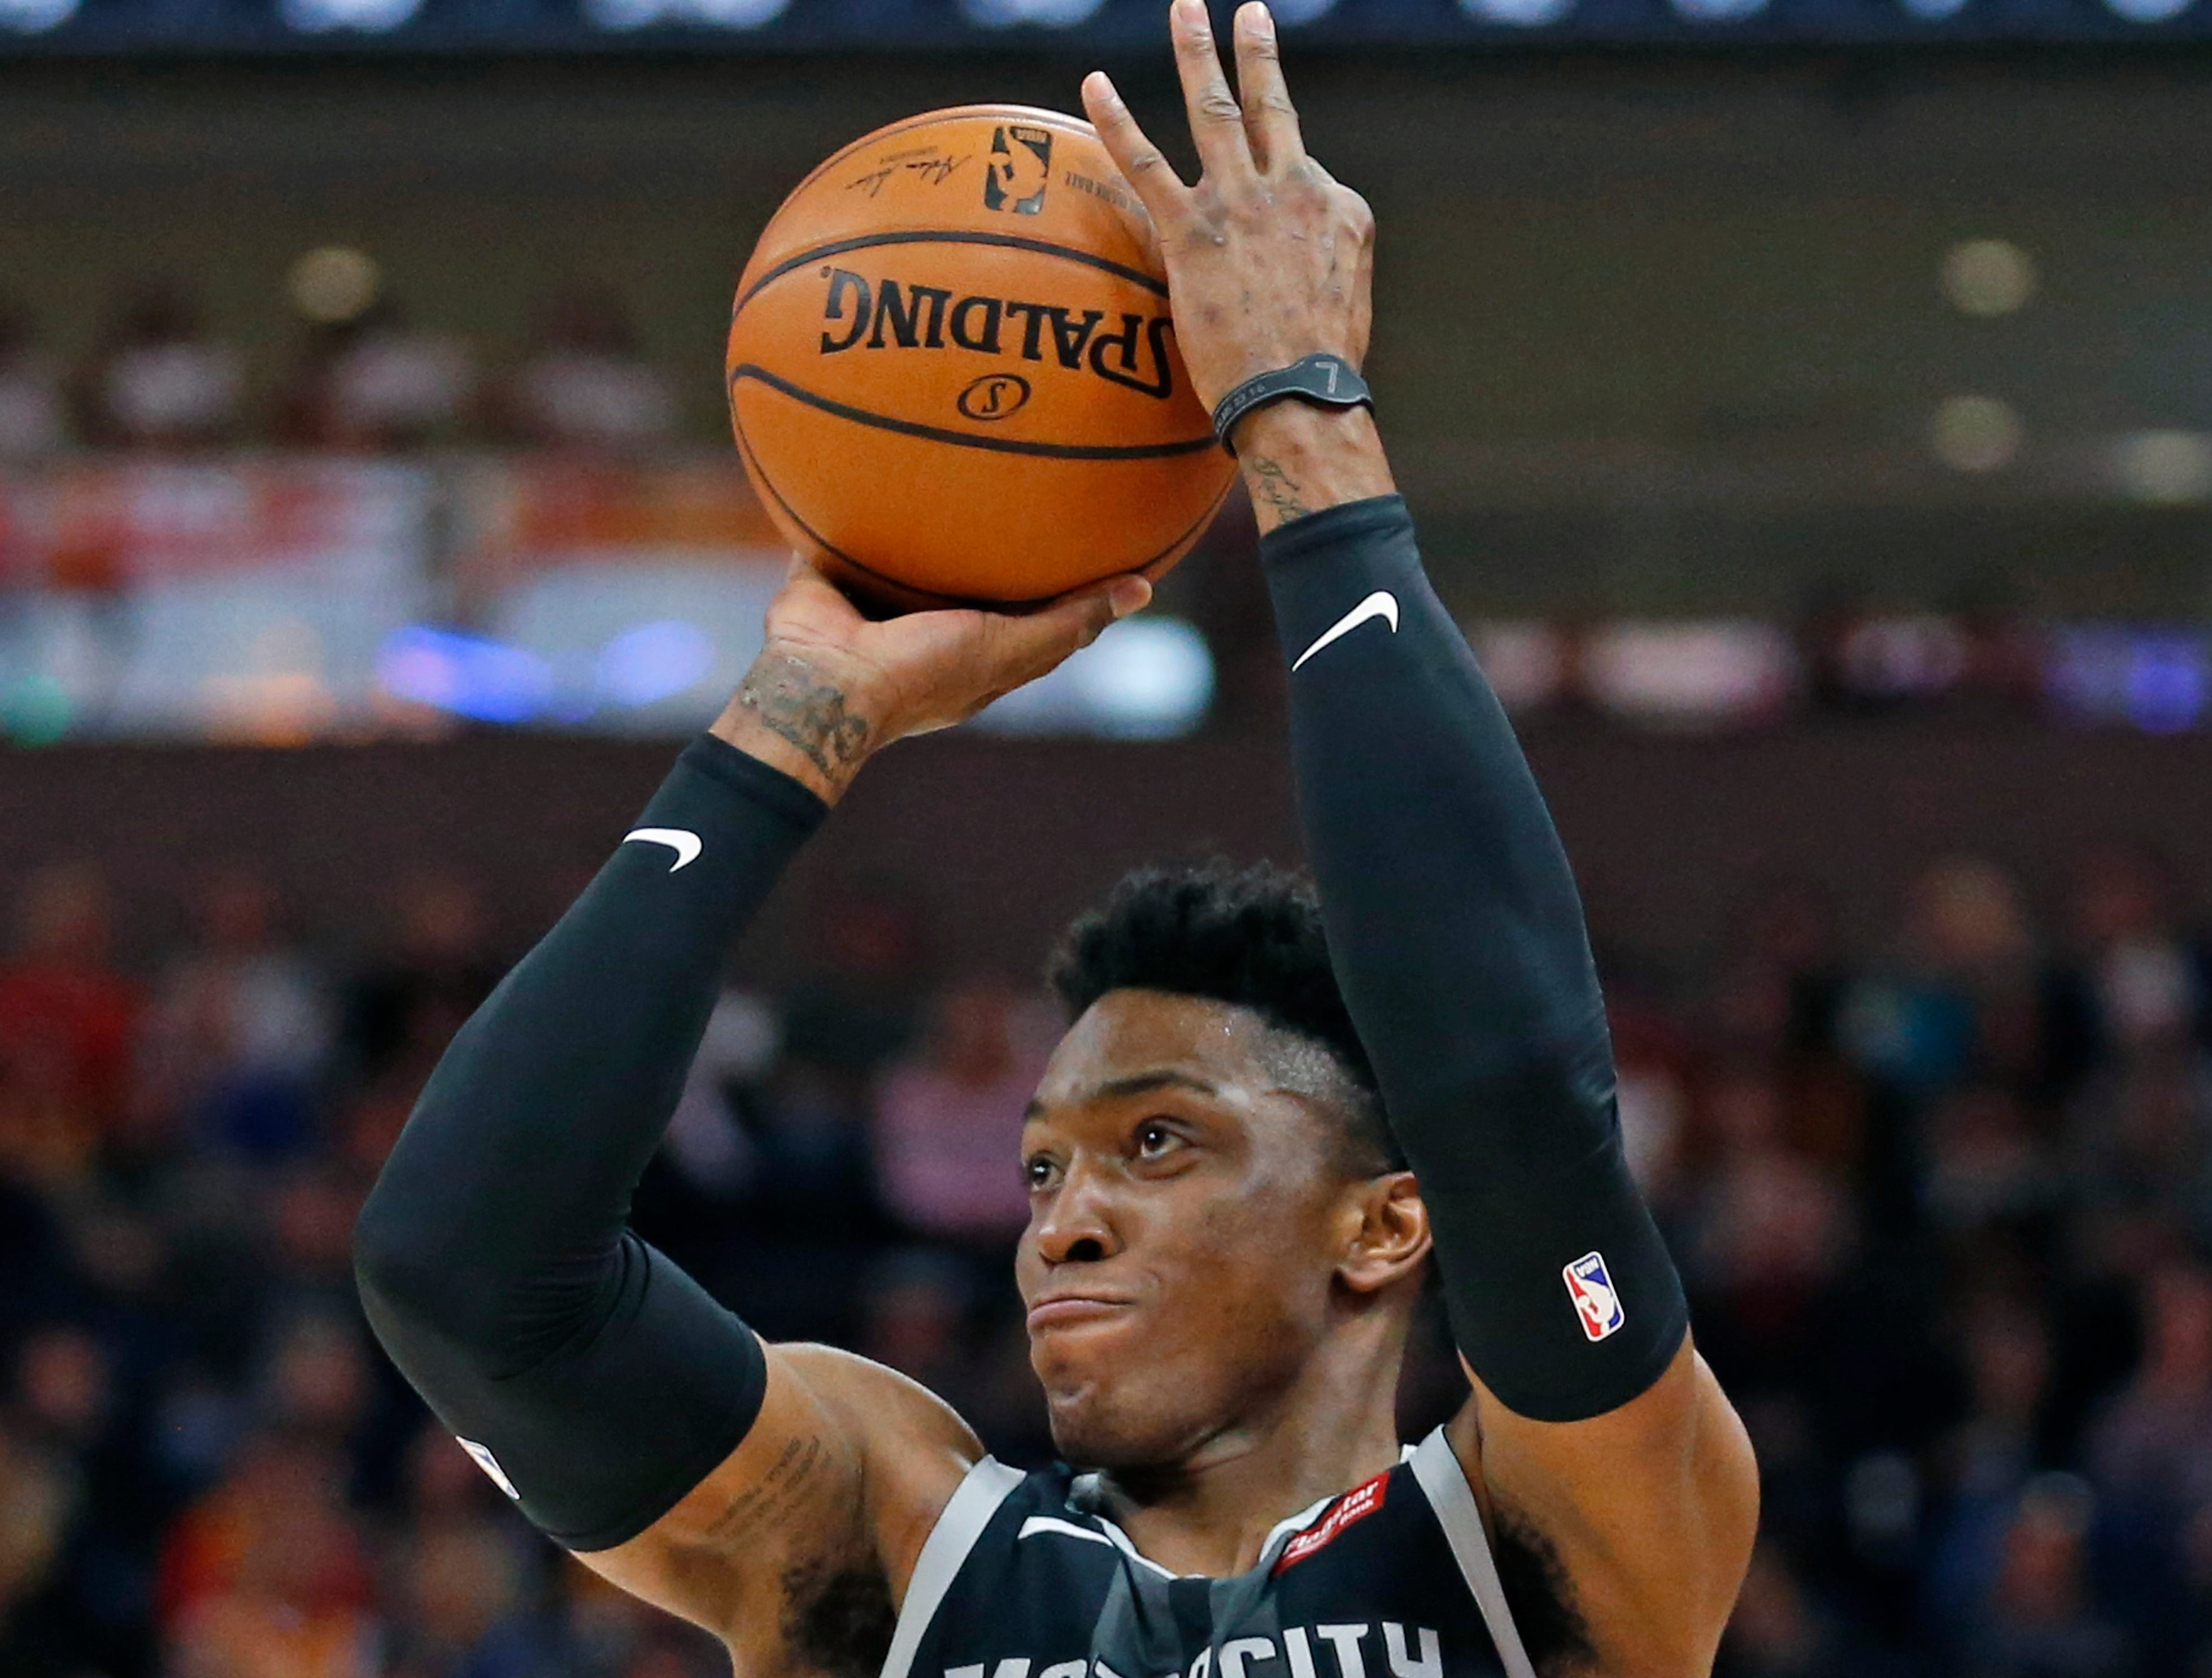 Detroit Pistons forward Stanley Johnson (7) shoots against the Utah Jazz during the first half of an NBA basketball game Monday, Jan. 14, 2019, in Salt Lake City. (AP Photo/Rick Bowmer)